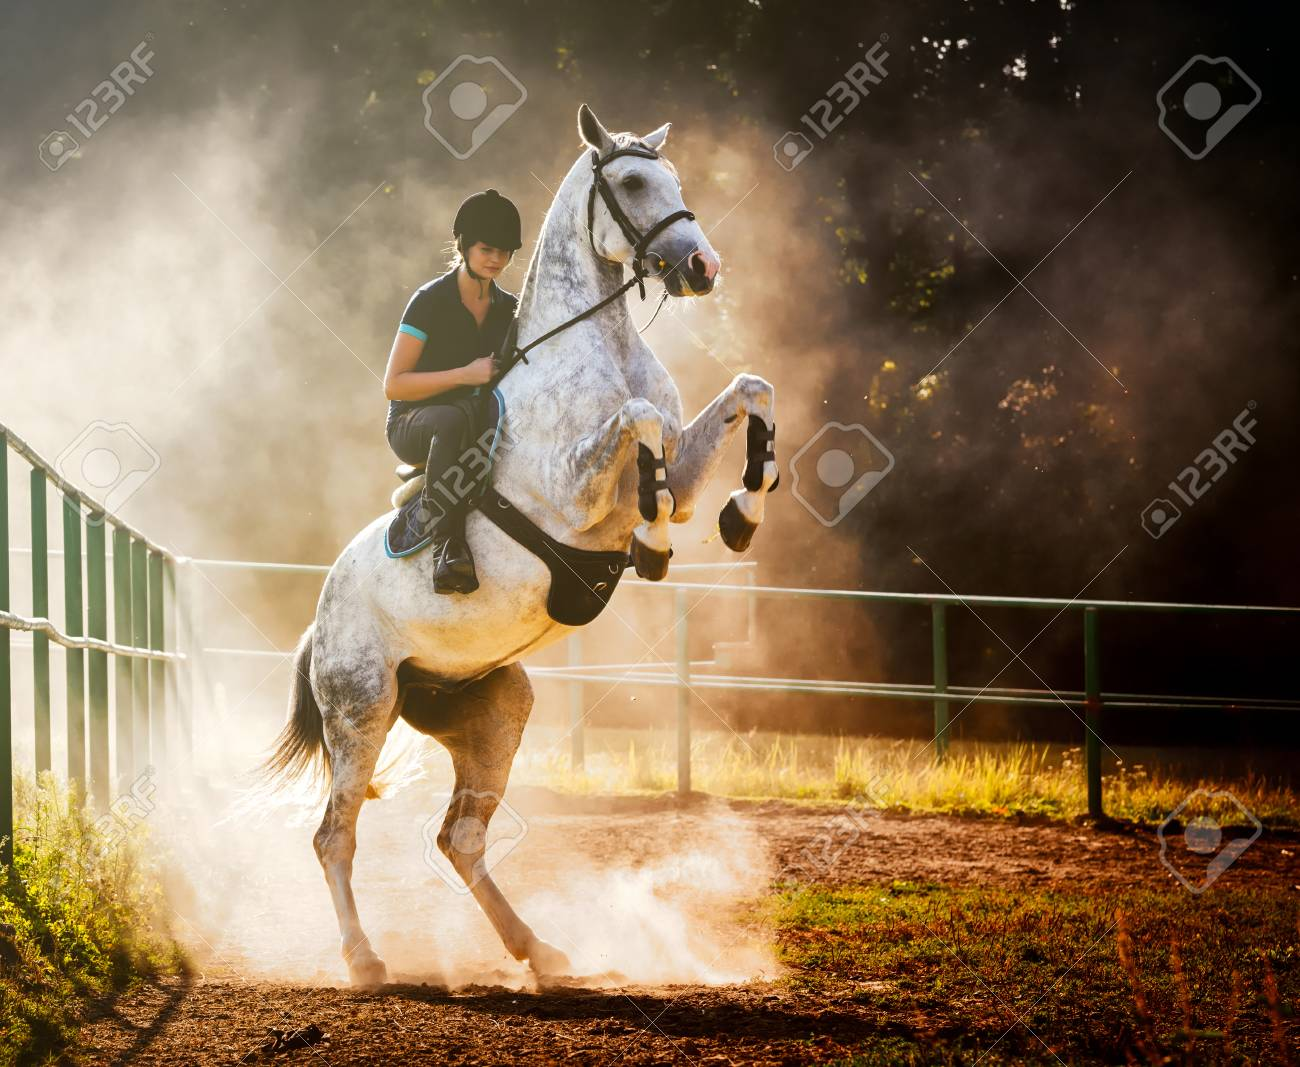 Woman Riding A Horse In Sand Dust Beautiful Pose On Hind Legs Stock Photo Picture And Royalty Free Image Image 86802365